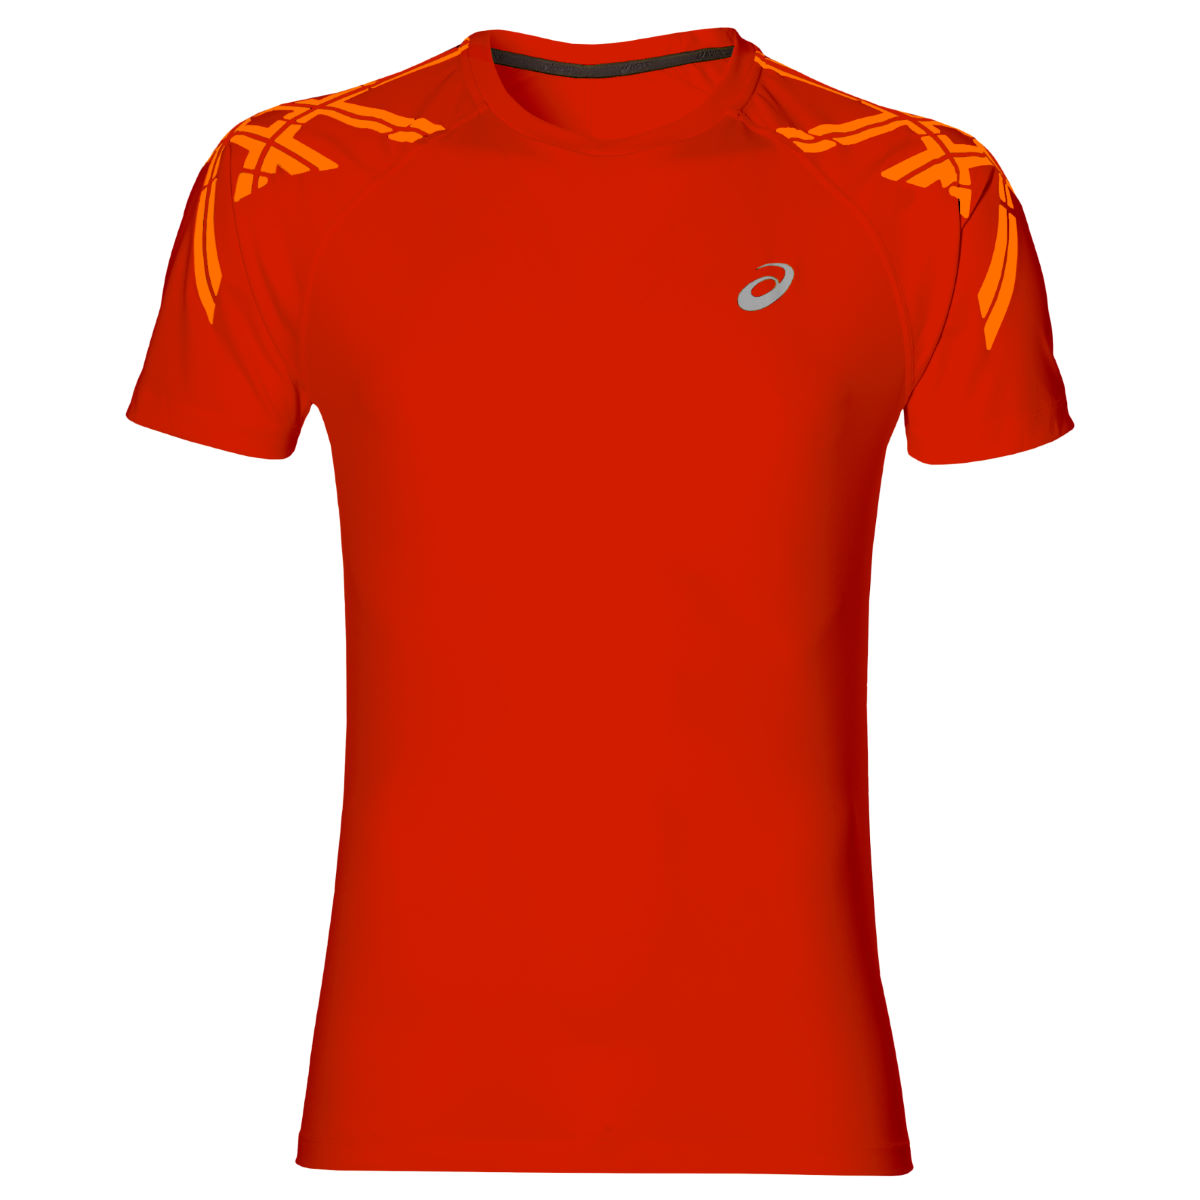 Maillot Asics Stripe (manches courtes) - S 0535 Red Clay heathe